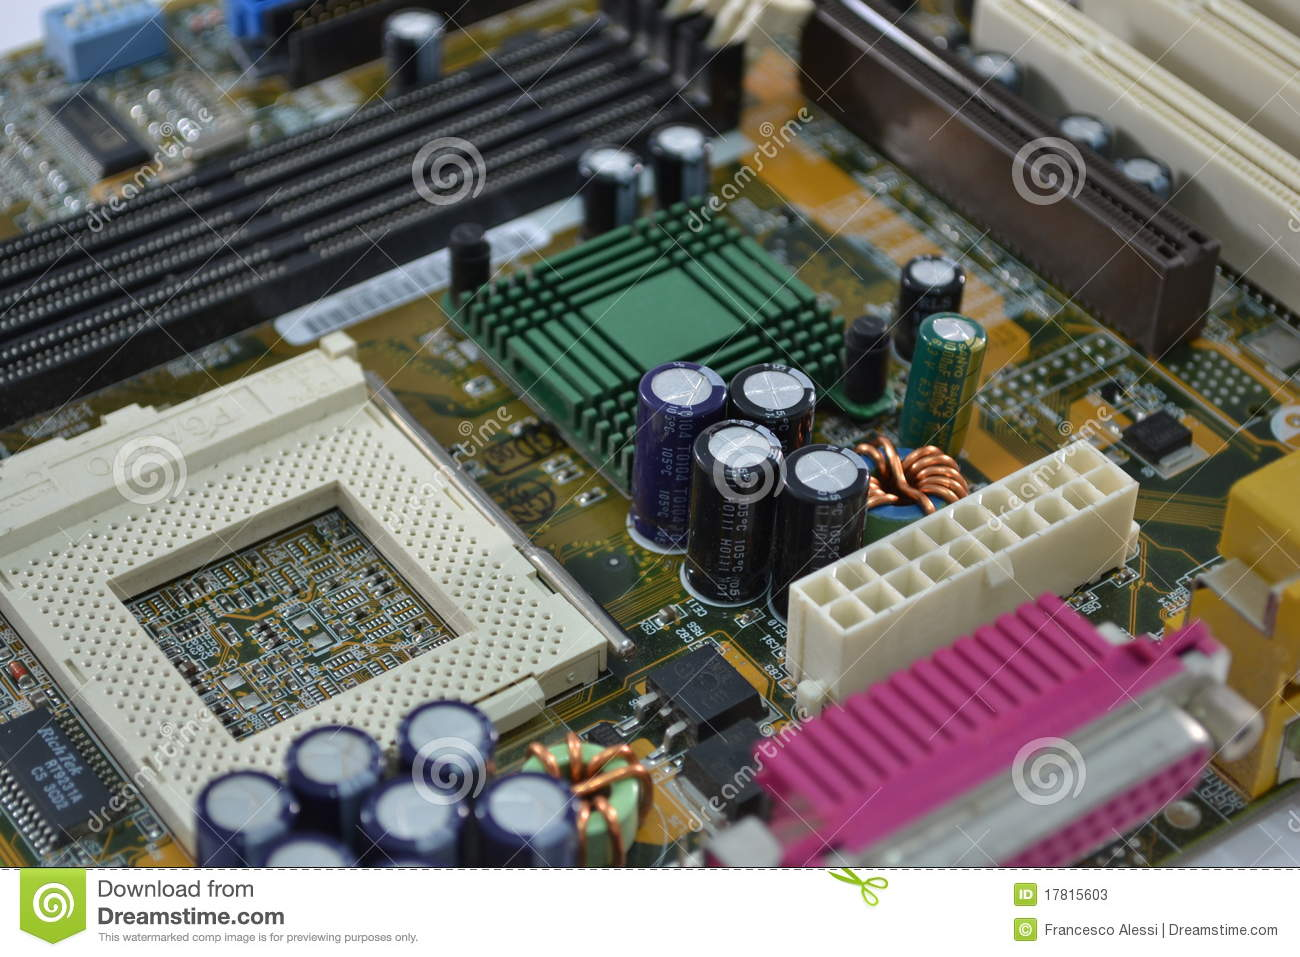 Mainboard do computador